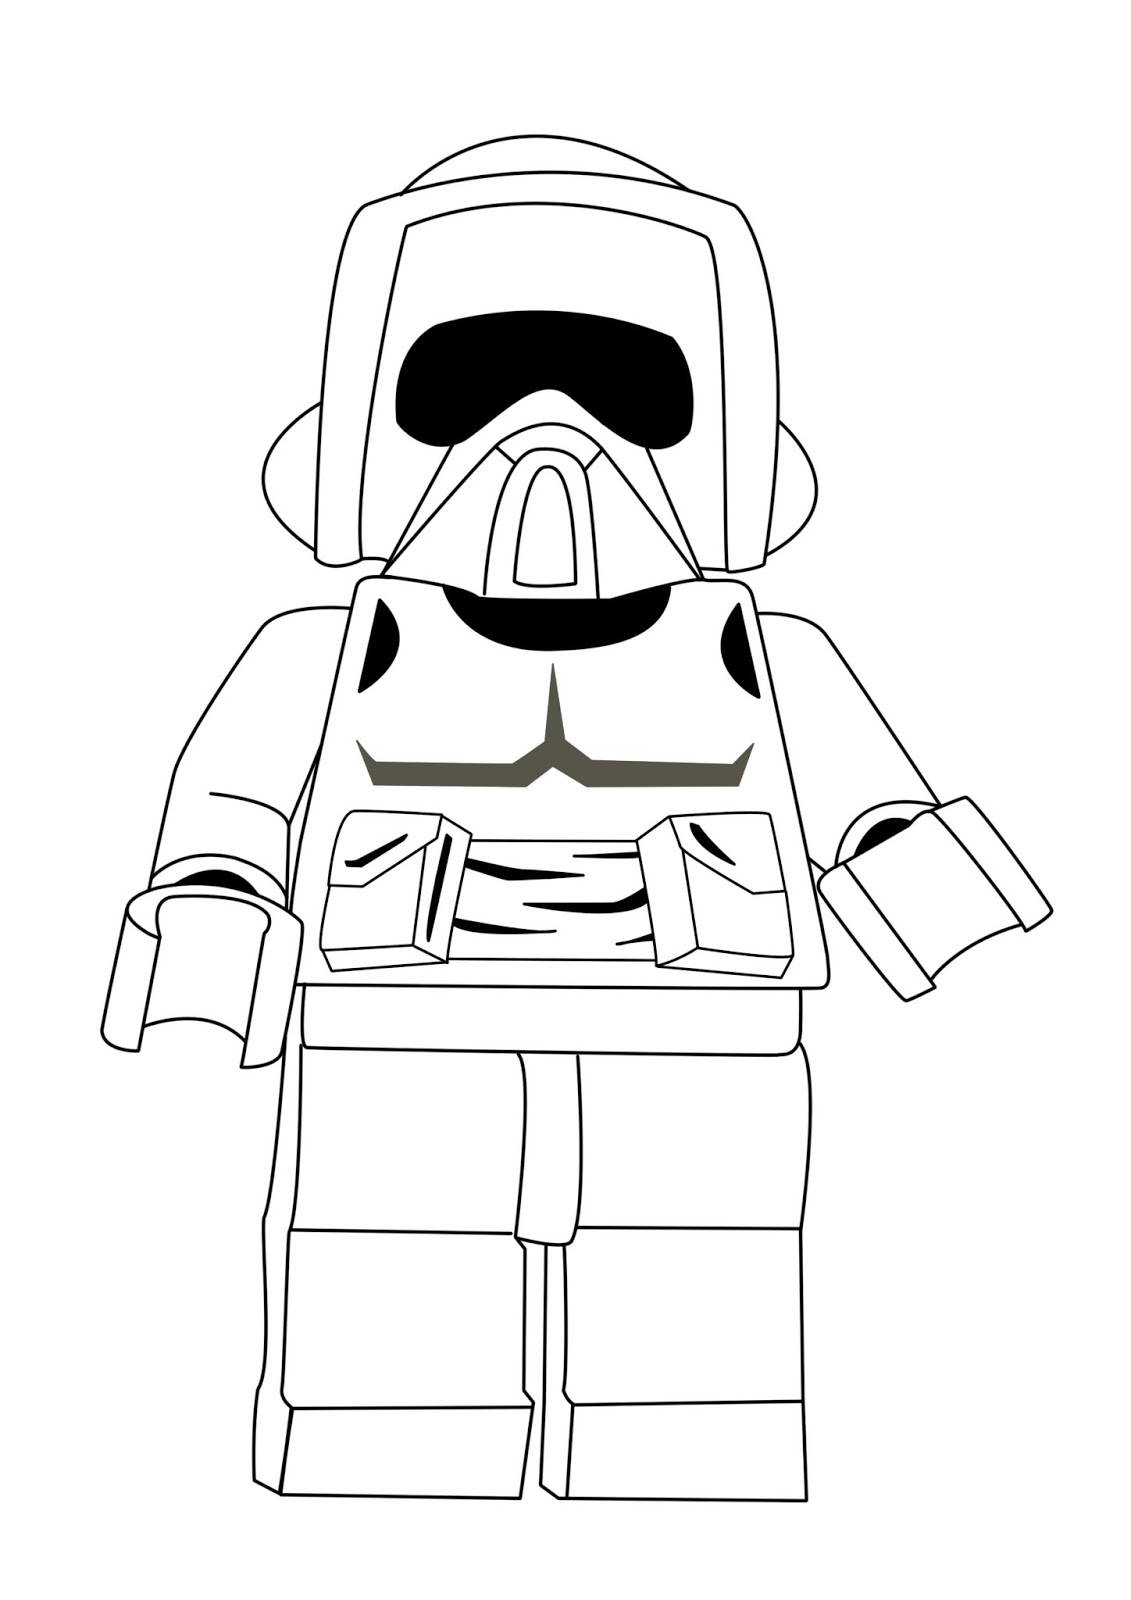 coloring lego printables free printable lego coloring pages for kids cool2bkids printables lego coloring